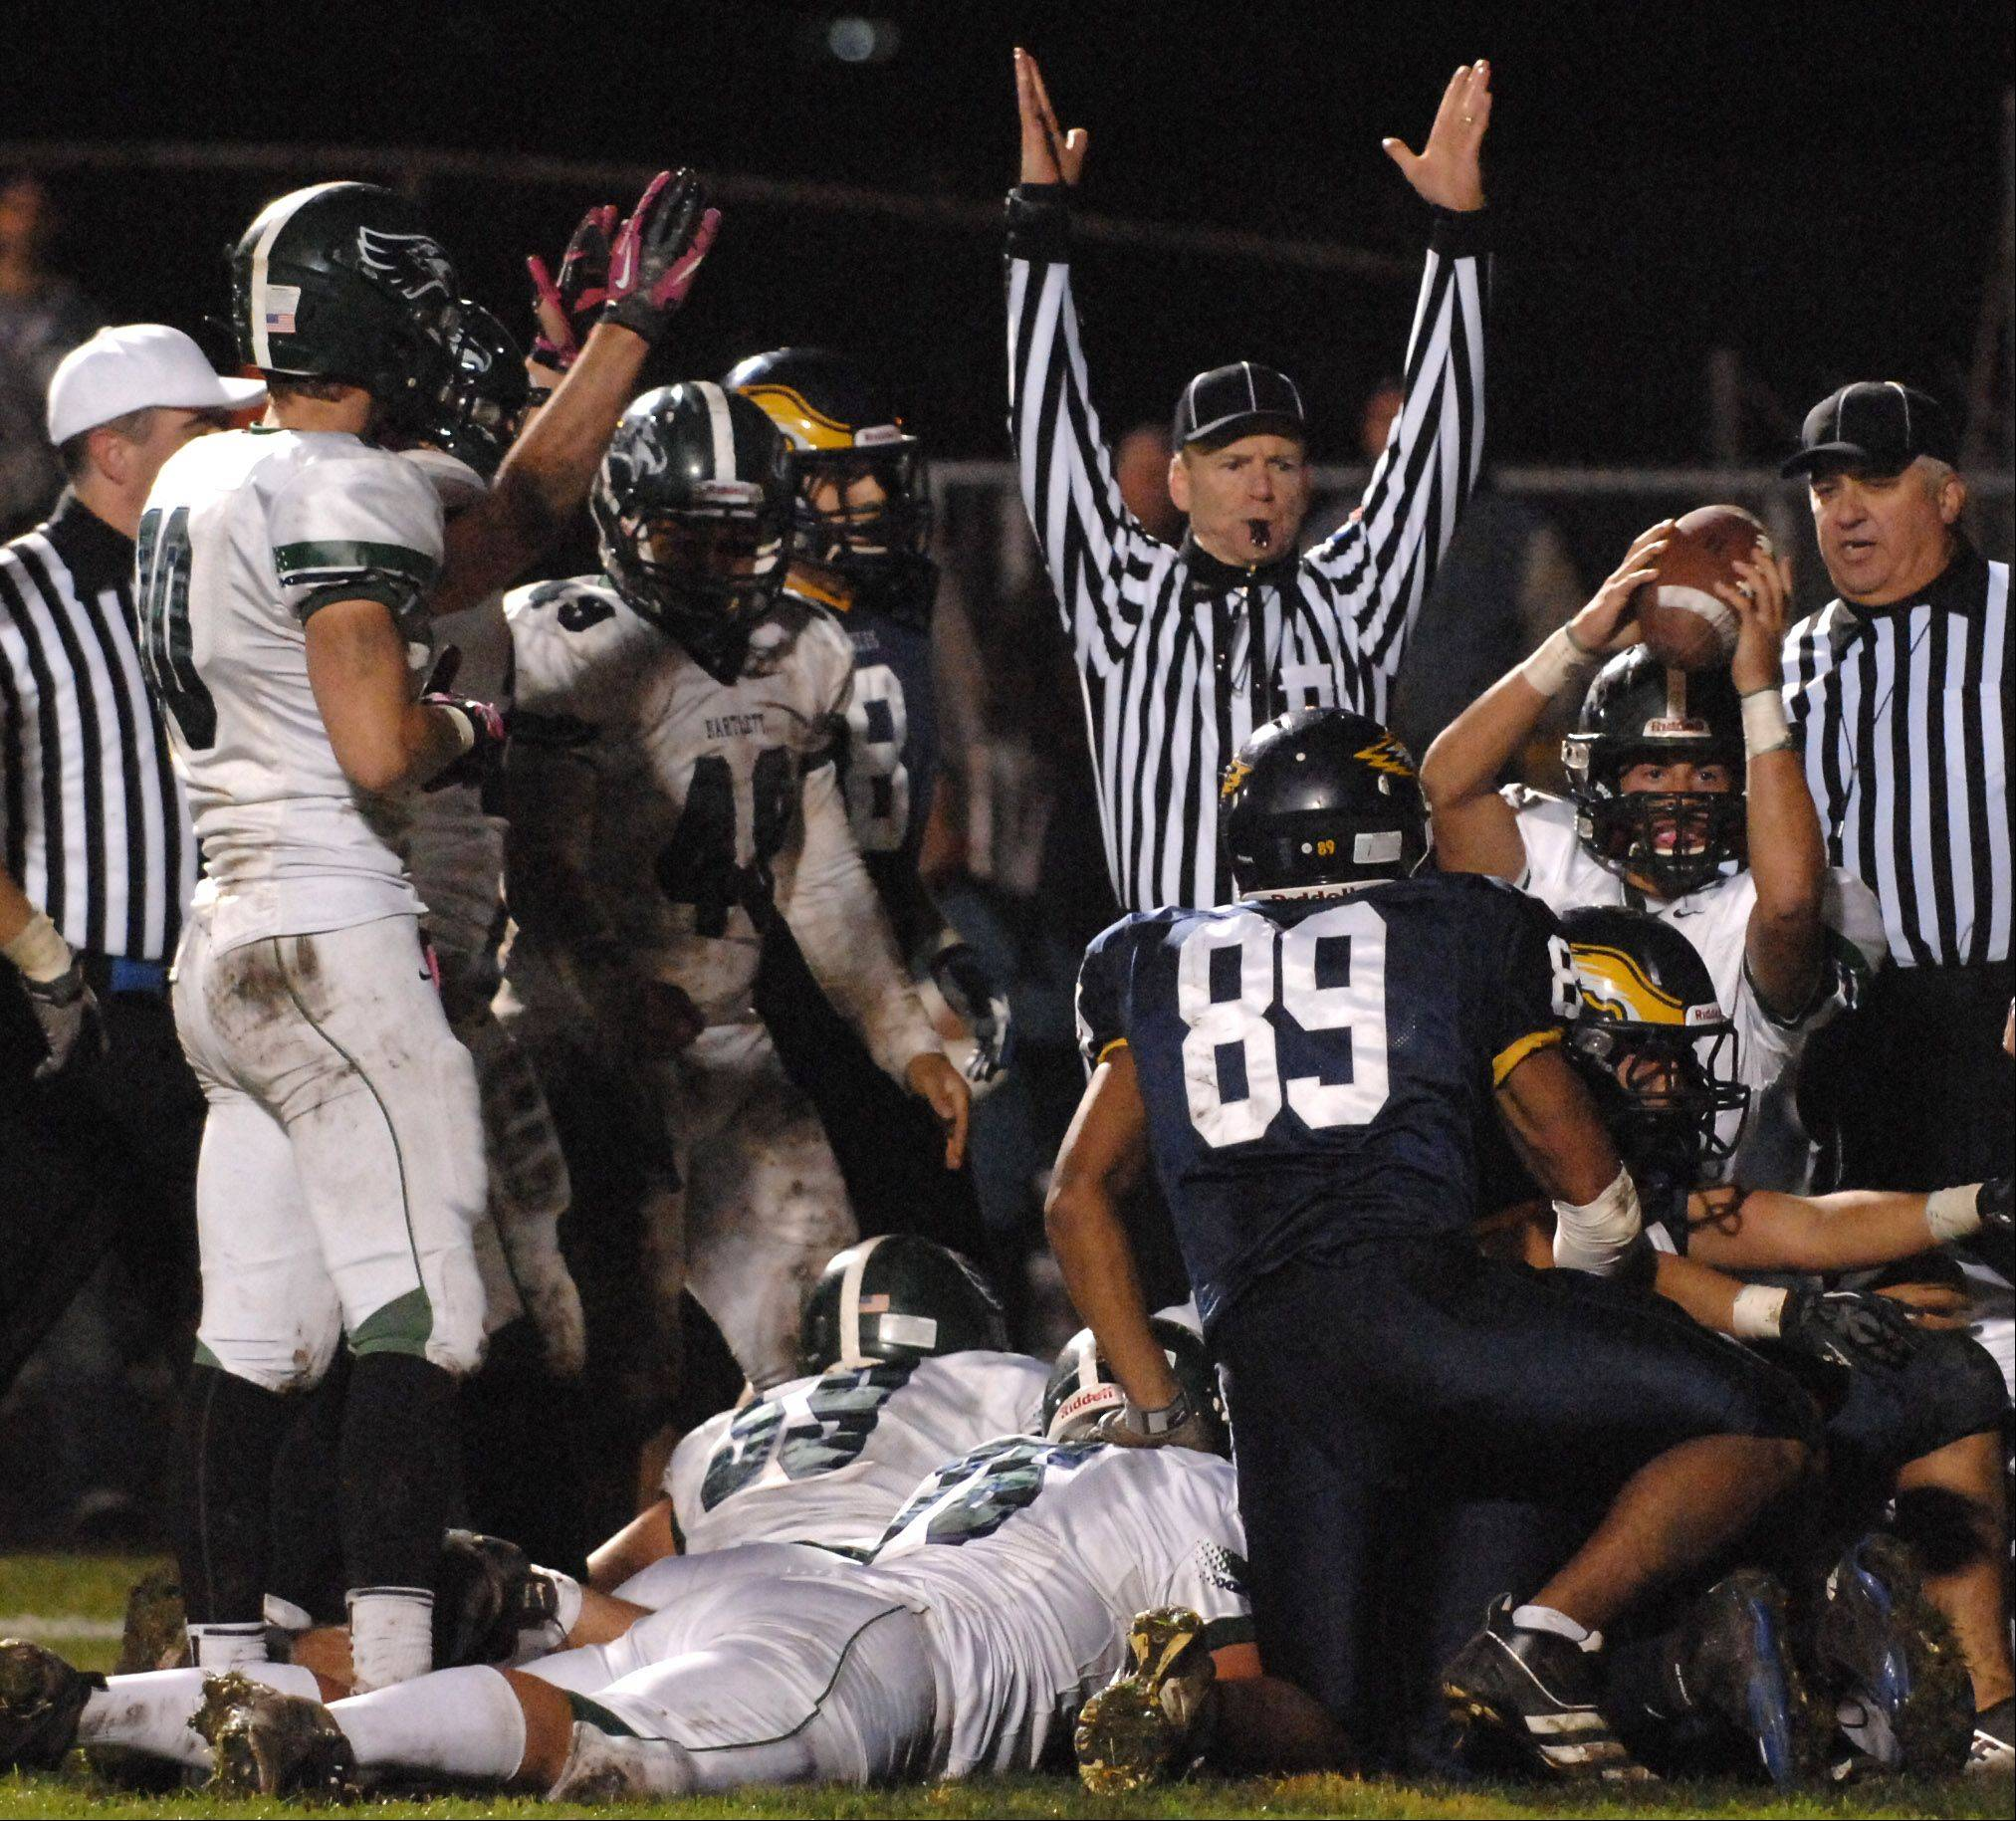 Bartlett's Kyle Garcia (11) holds up the ball as the referee signals touchdown to put the Hawks up 14-0 over Leyden in Northlake Friday.